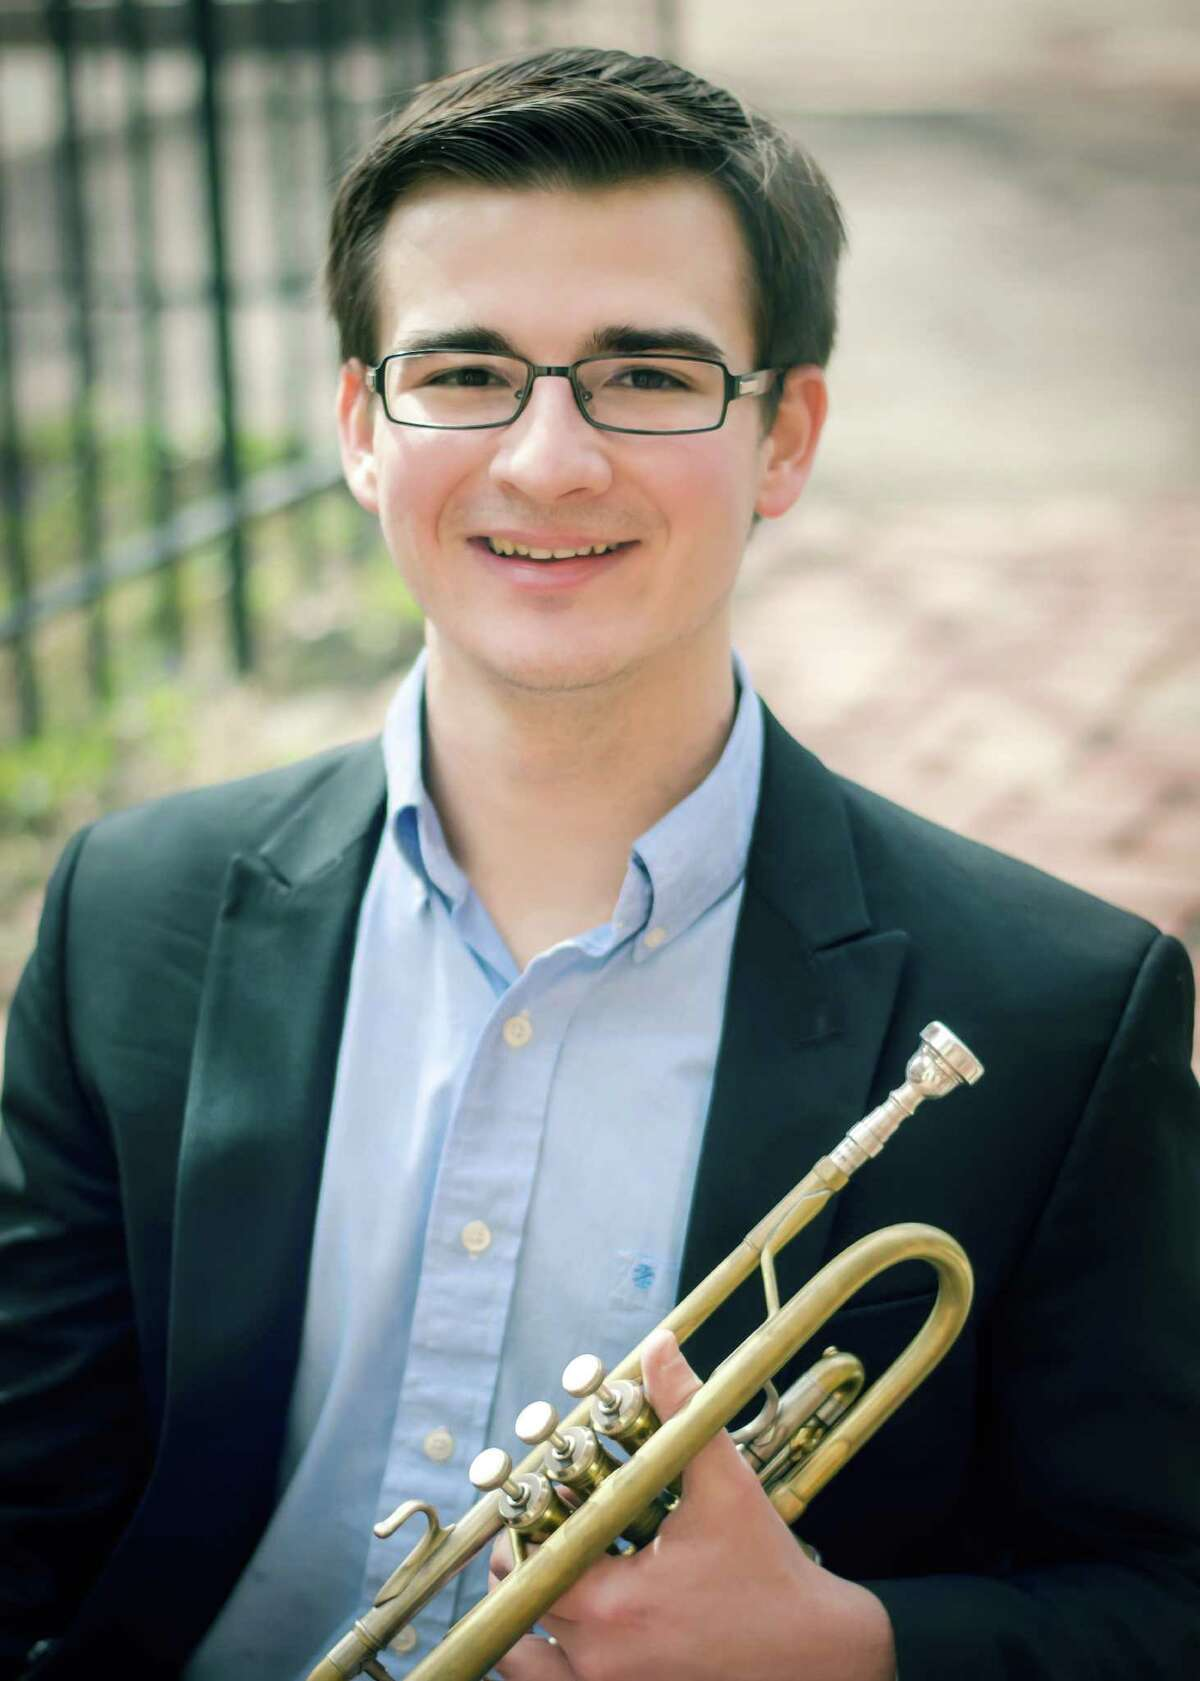 Dylan Harris of clear lake will perform at the 26th annual Immanuel and Helen Olshan Texas Music Festival.